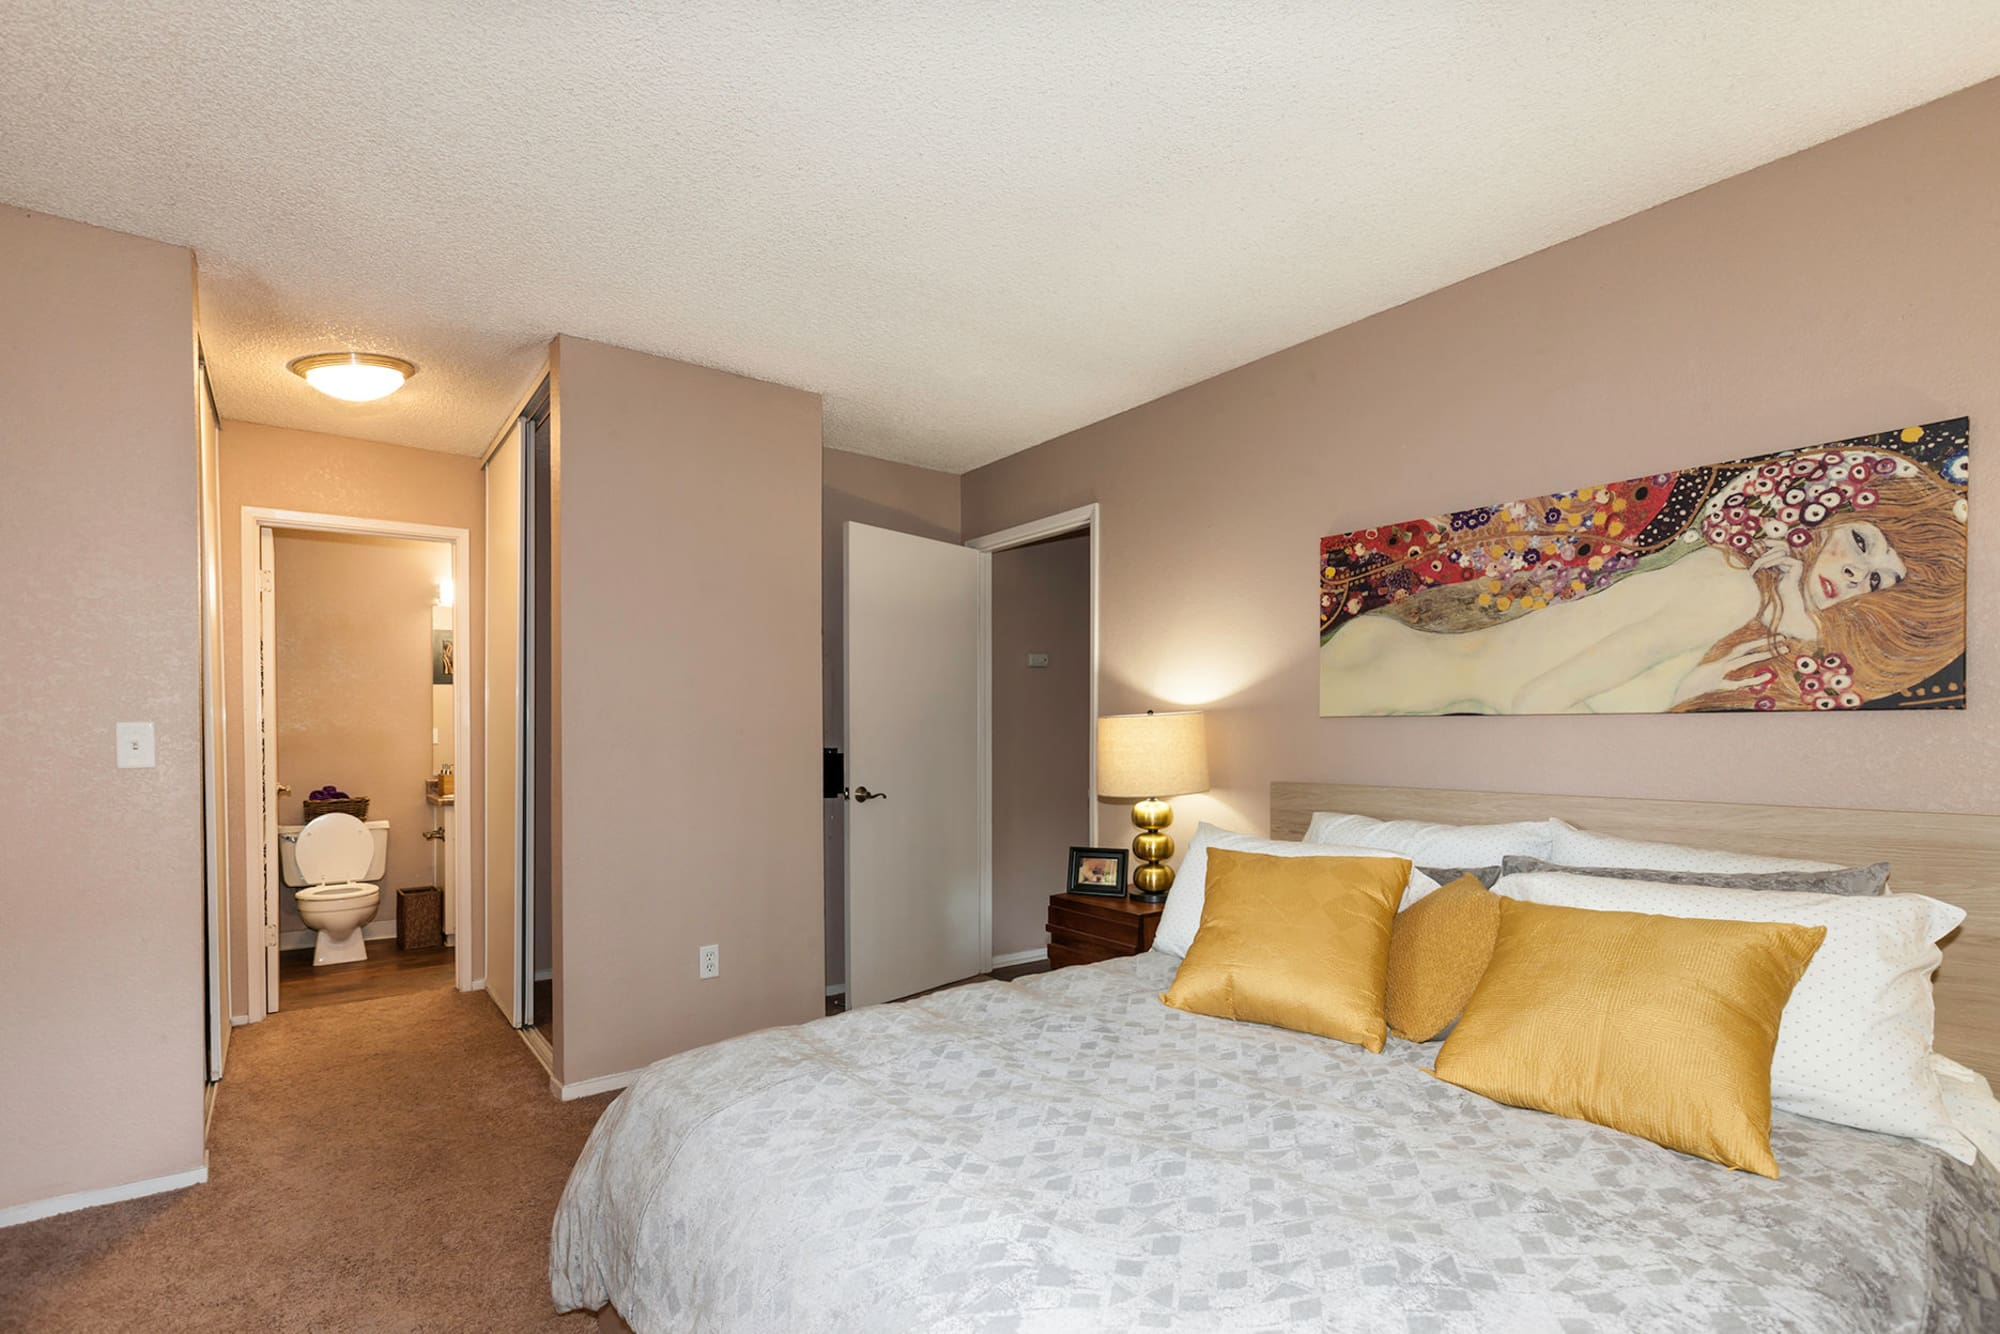 Bedroom at The Woodlands Apartments